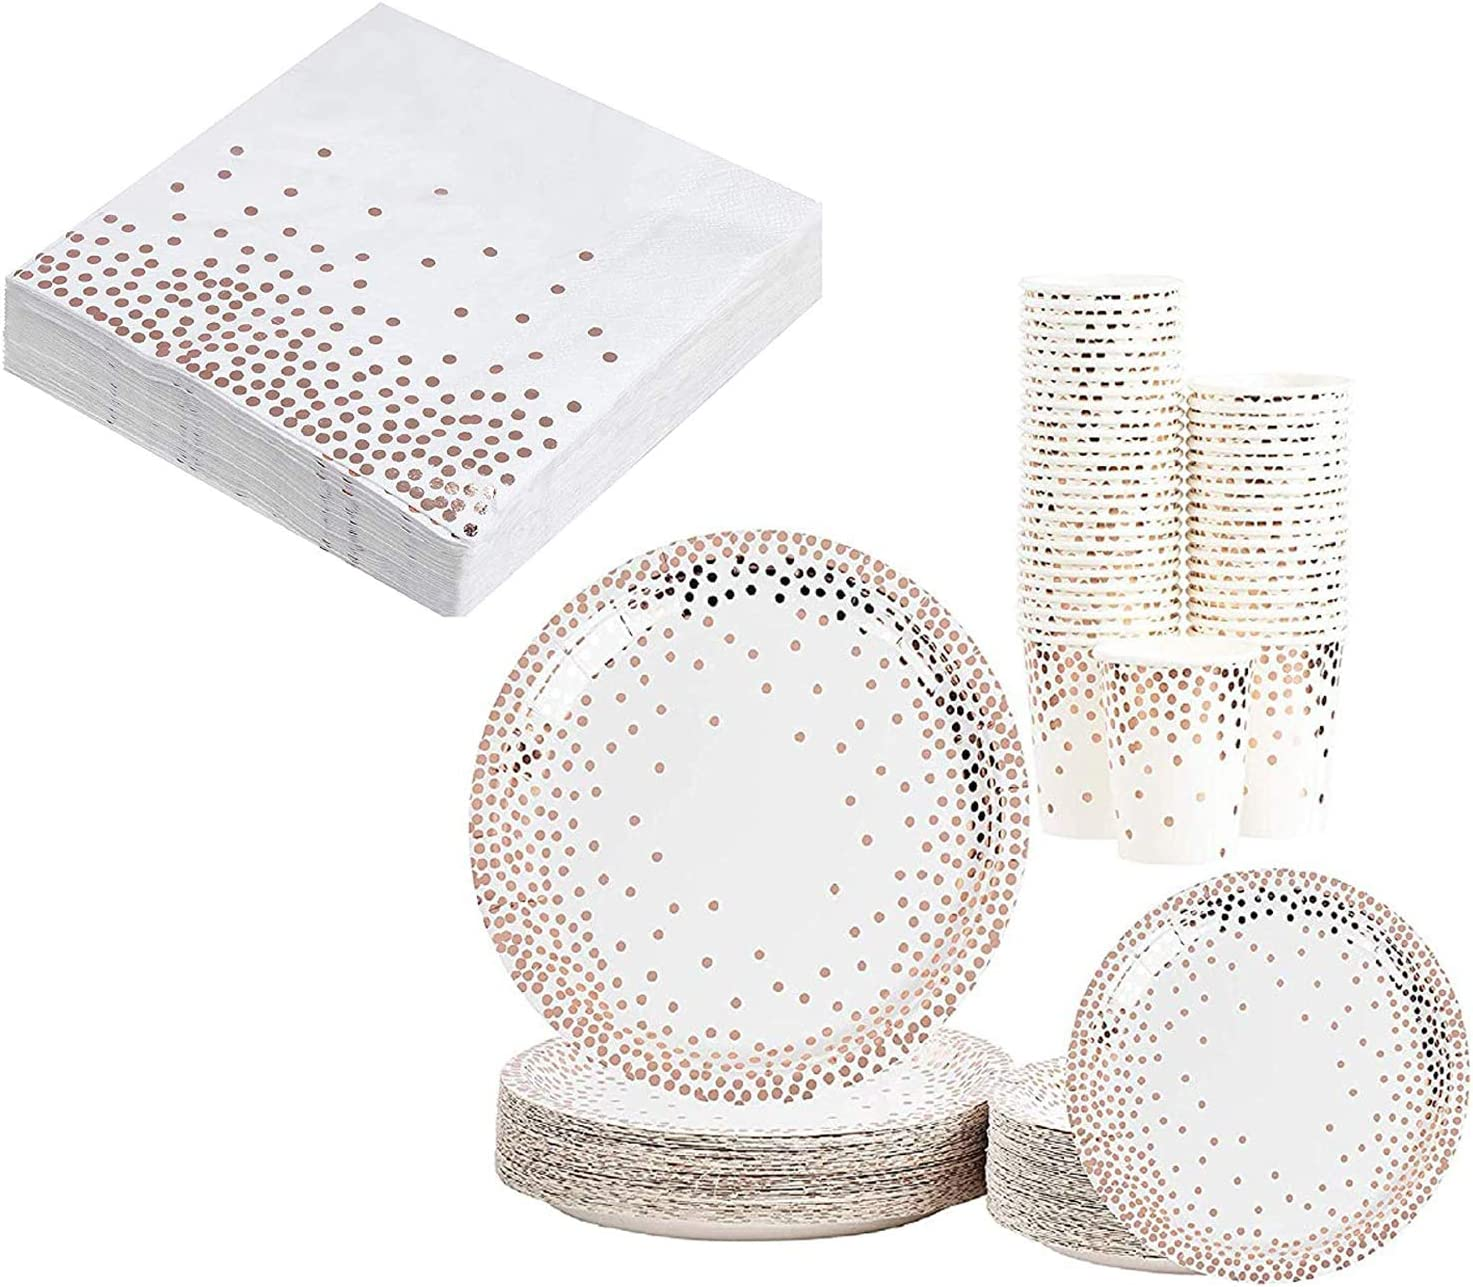 Rose Gold Party Supplies Bundle with Disposable Tableware and Napkins (122 Pieces)